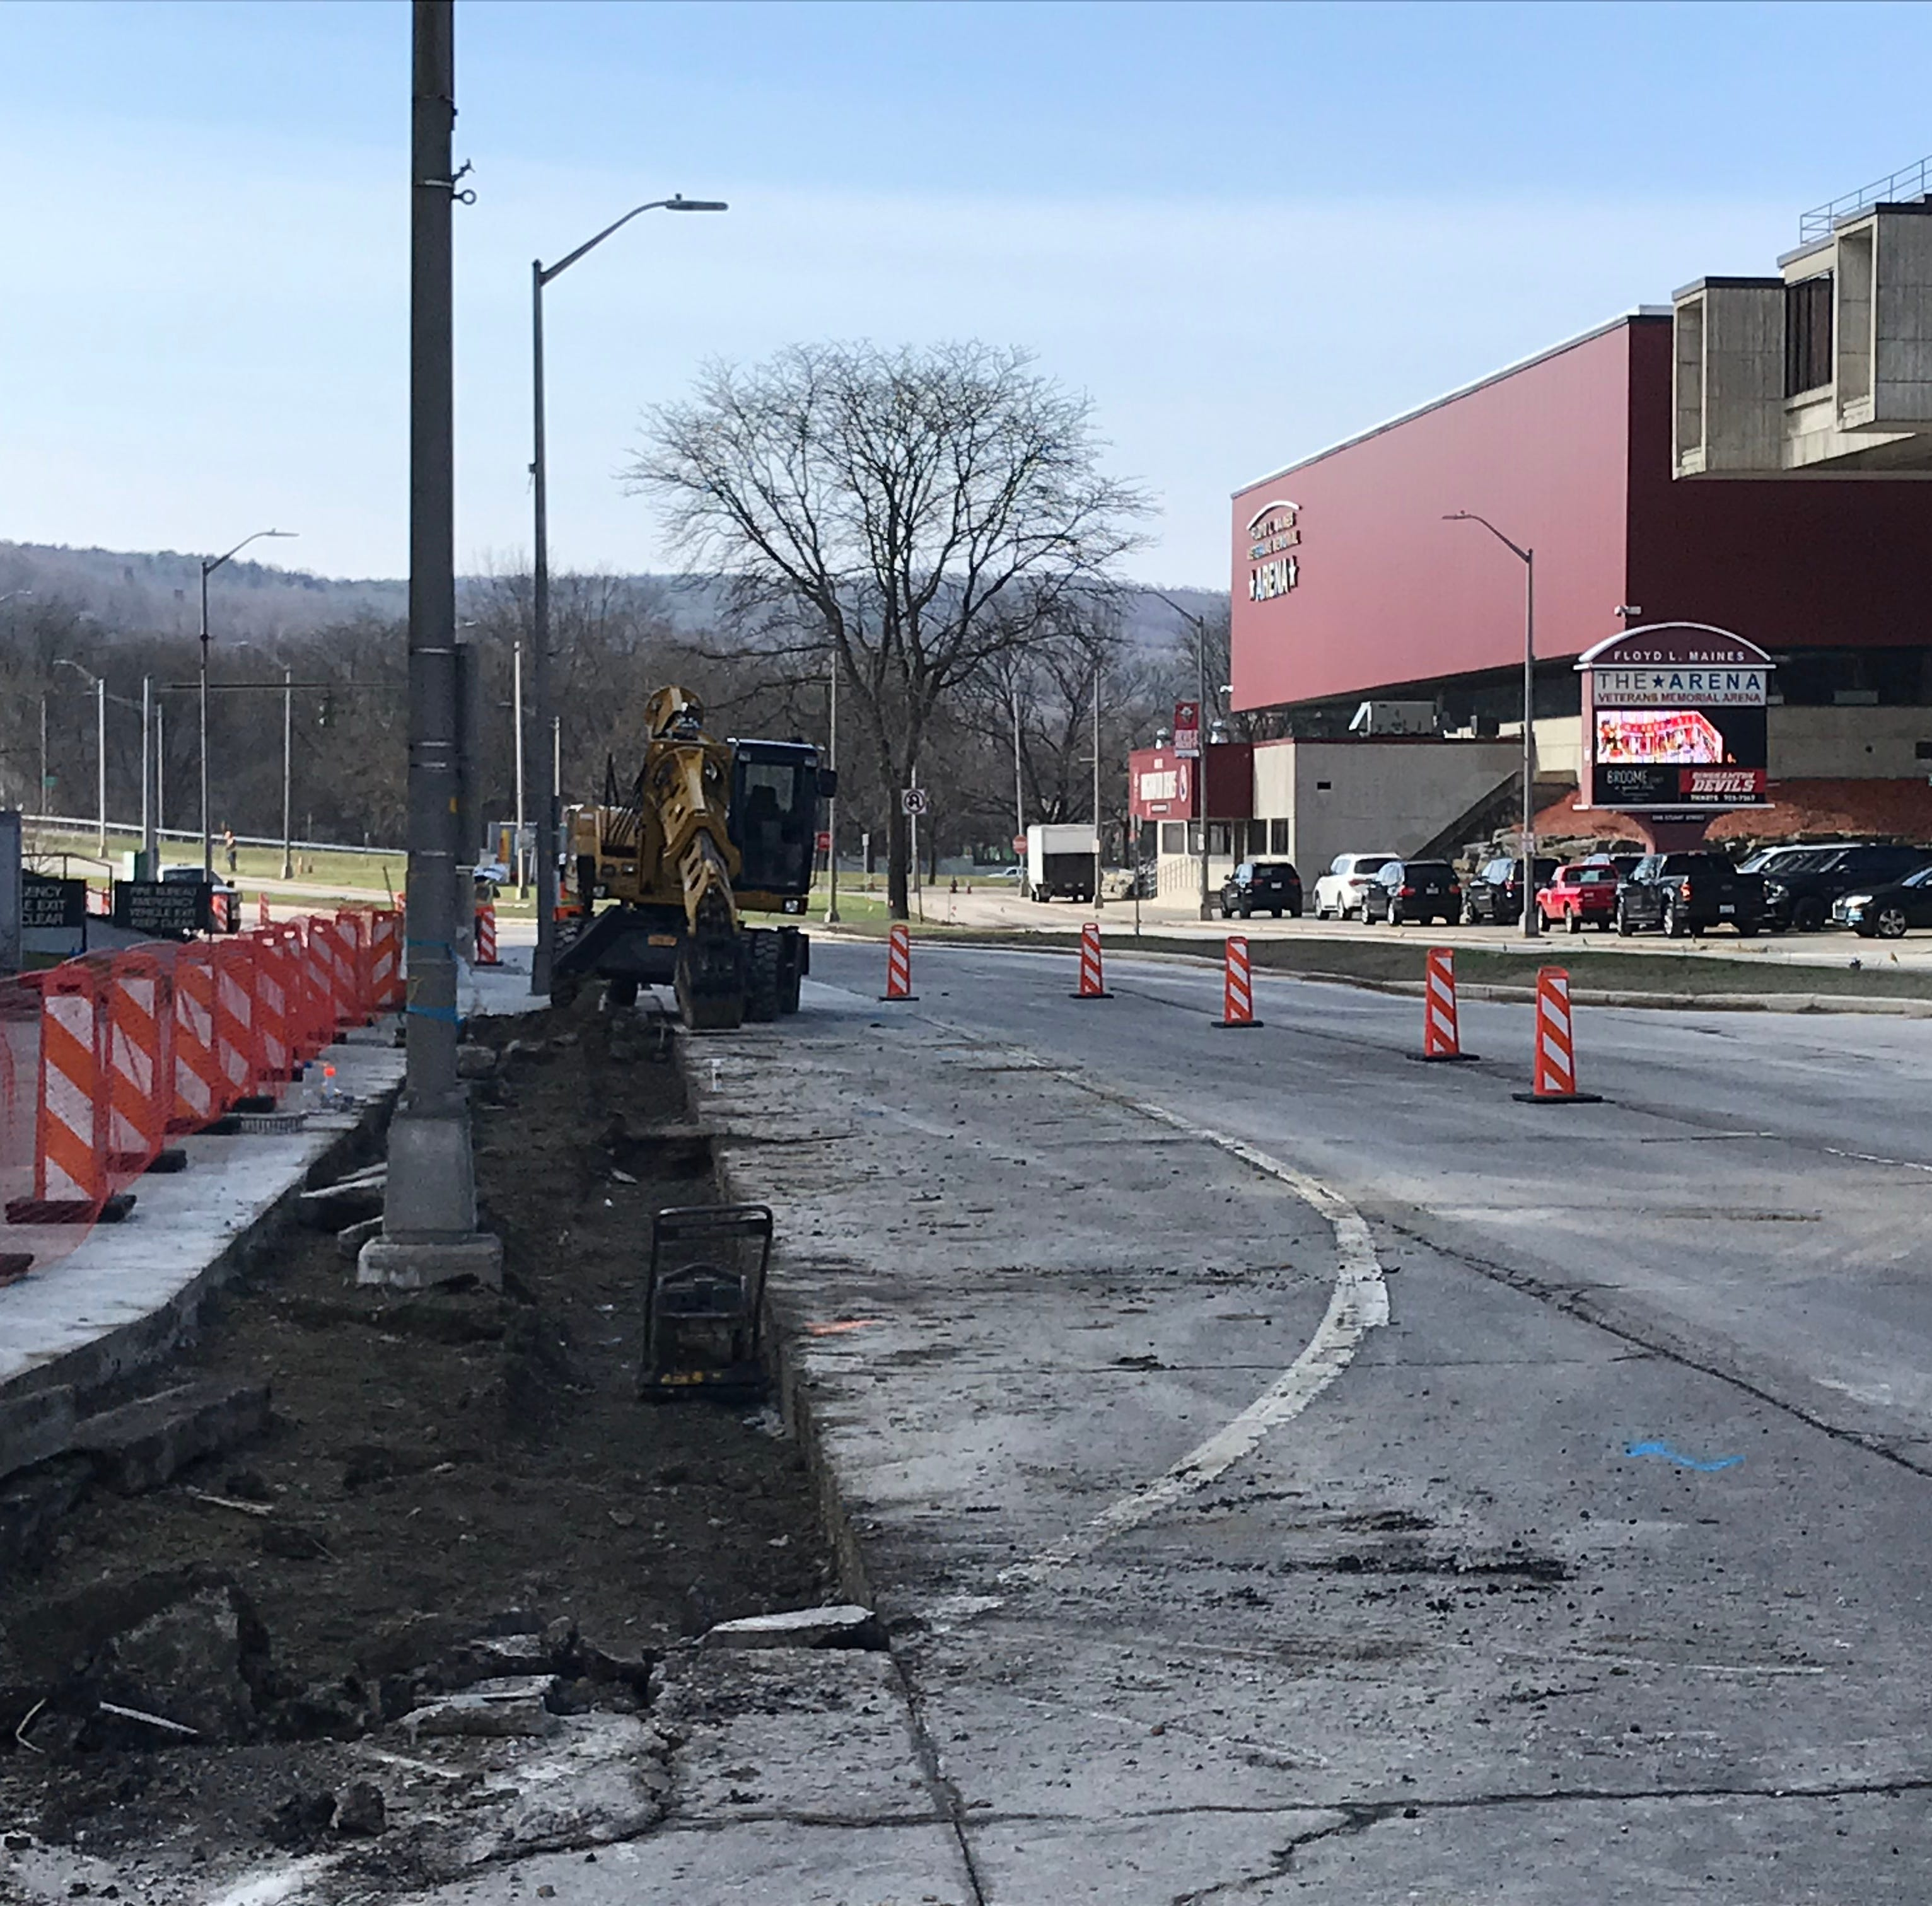 Construction underway on $2.2 million State Street Gateway Project in Binghamton